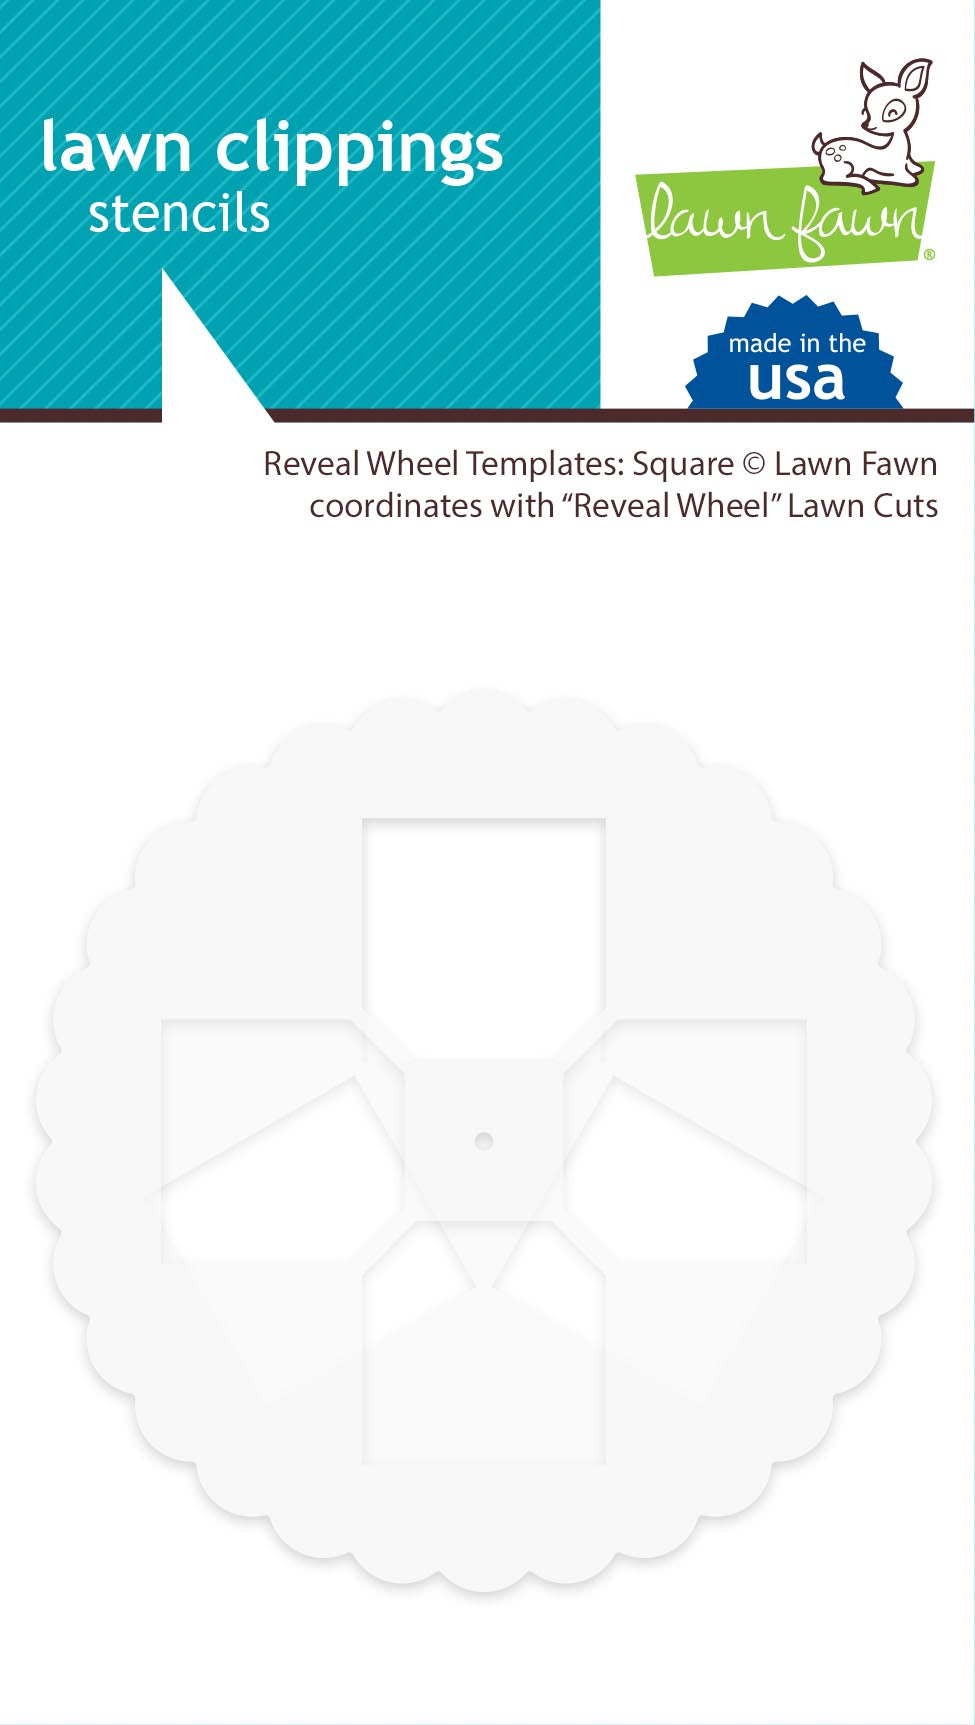 reveal wheel templates: square